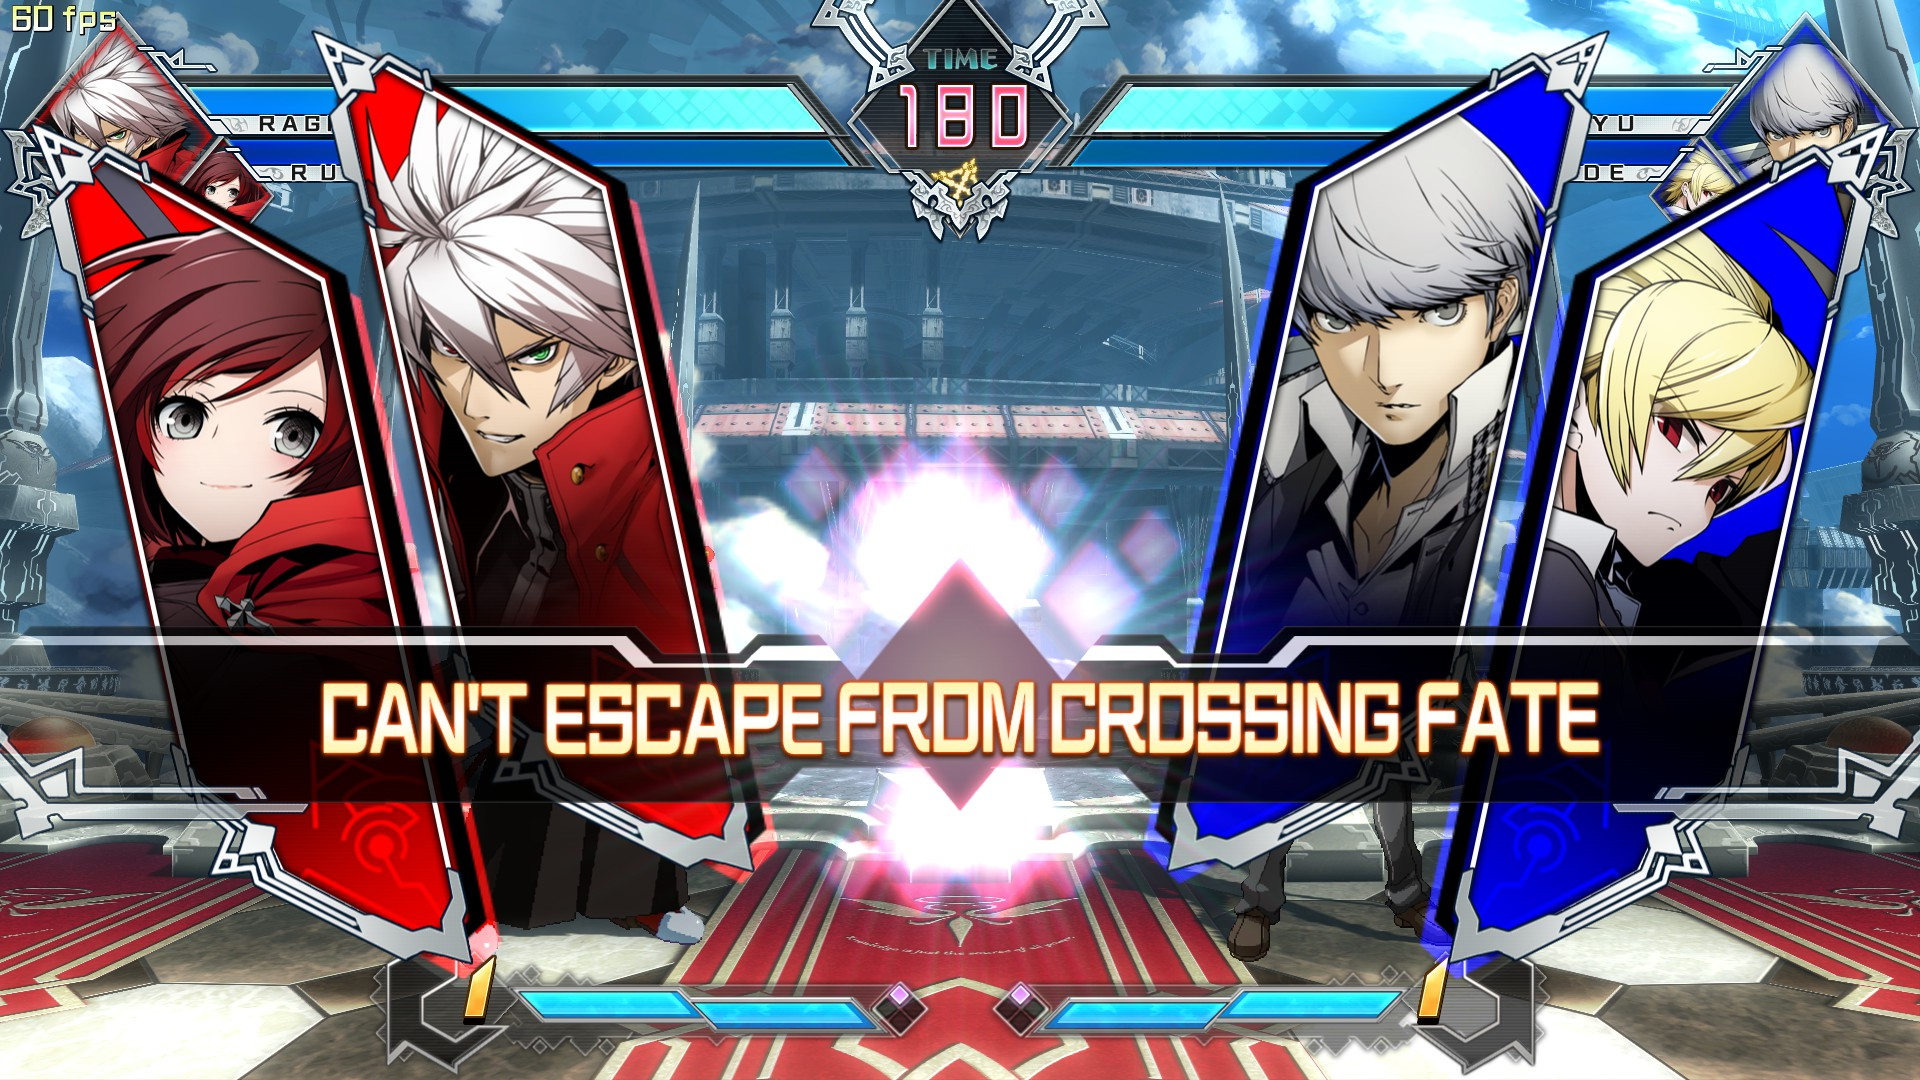 blazblue-cross-tag-battle-06-arc-system-works